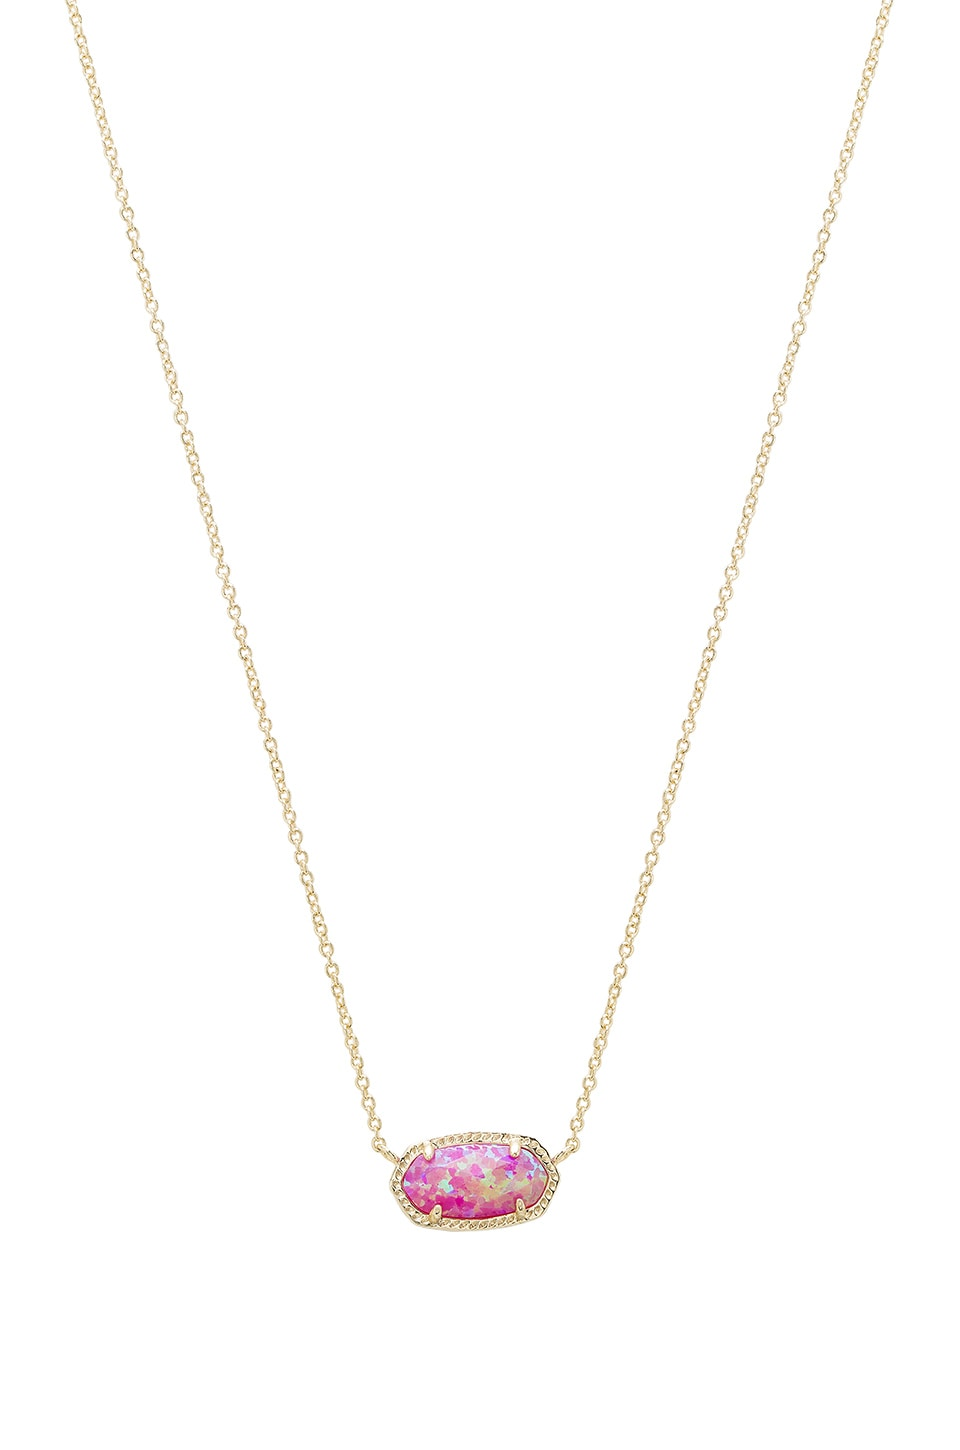 Kendra Scott Elisa Necklace in Gold & Fuchsia Opal